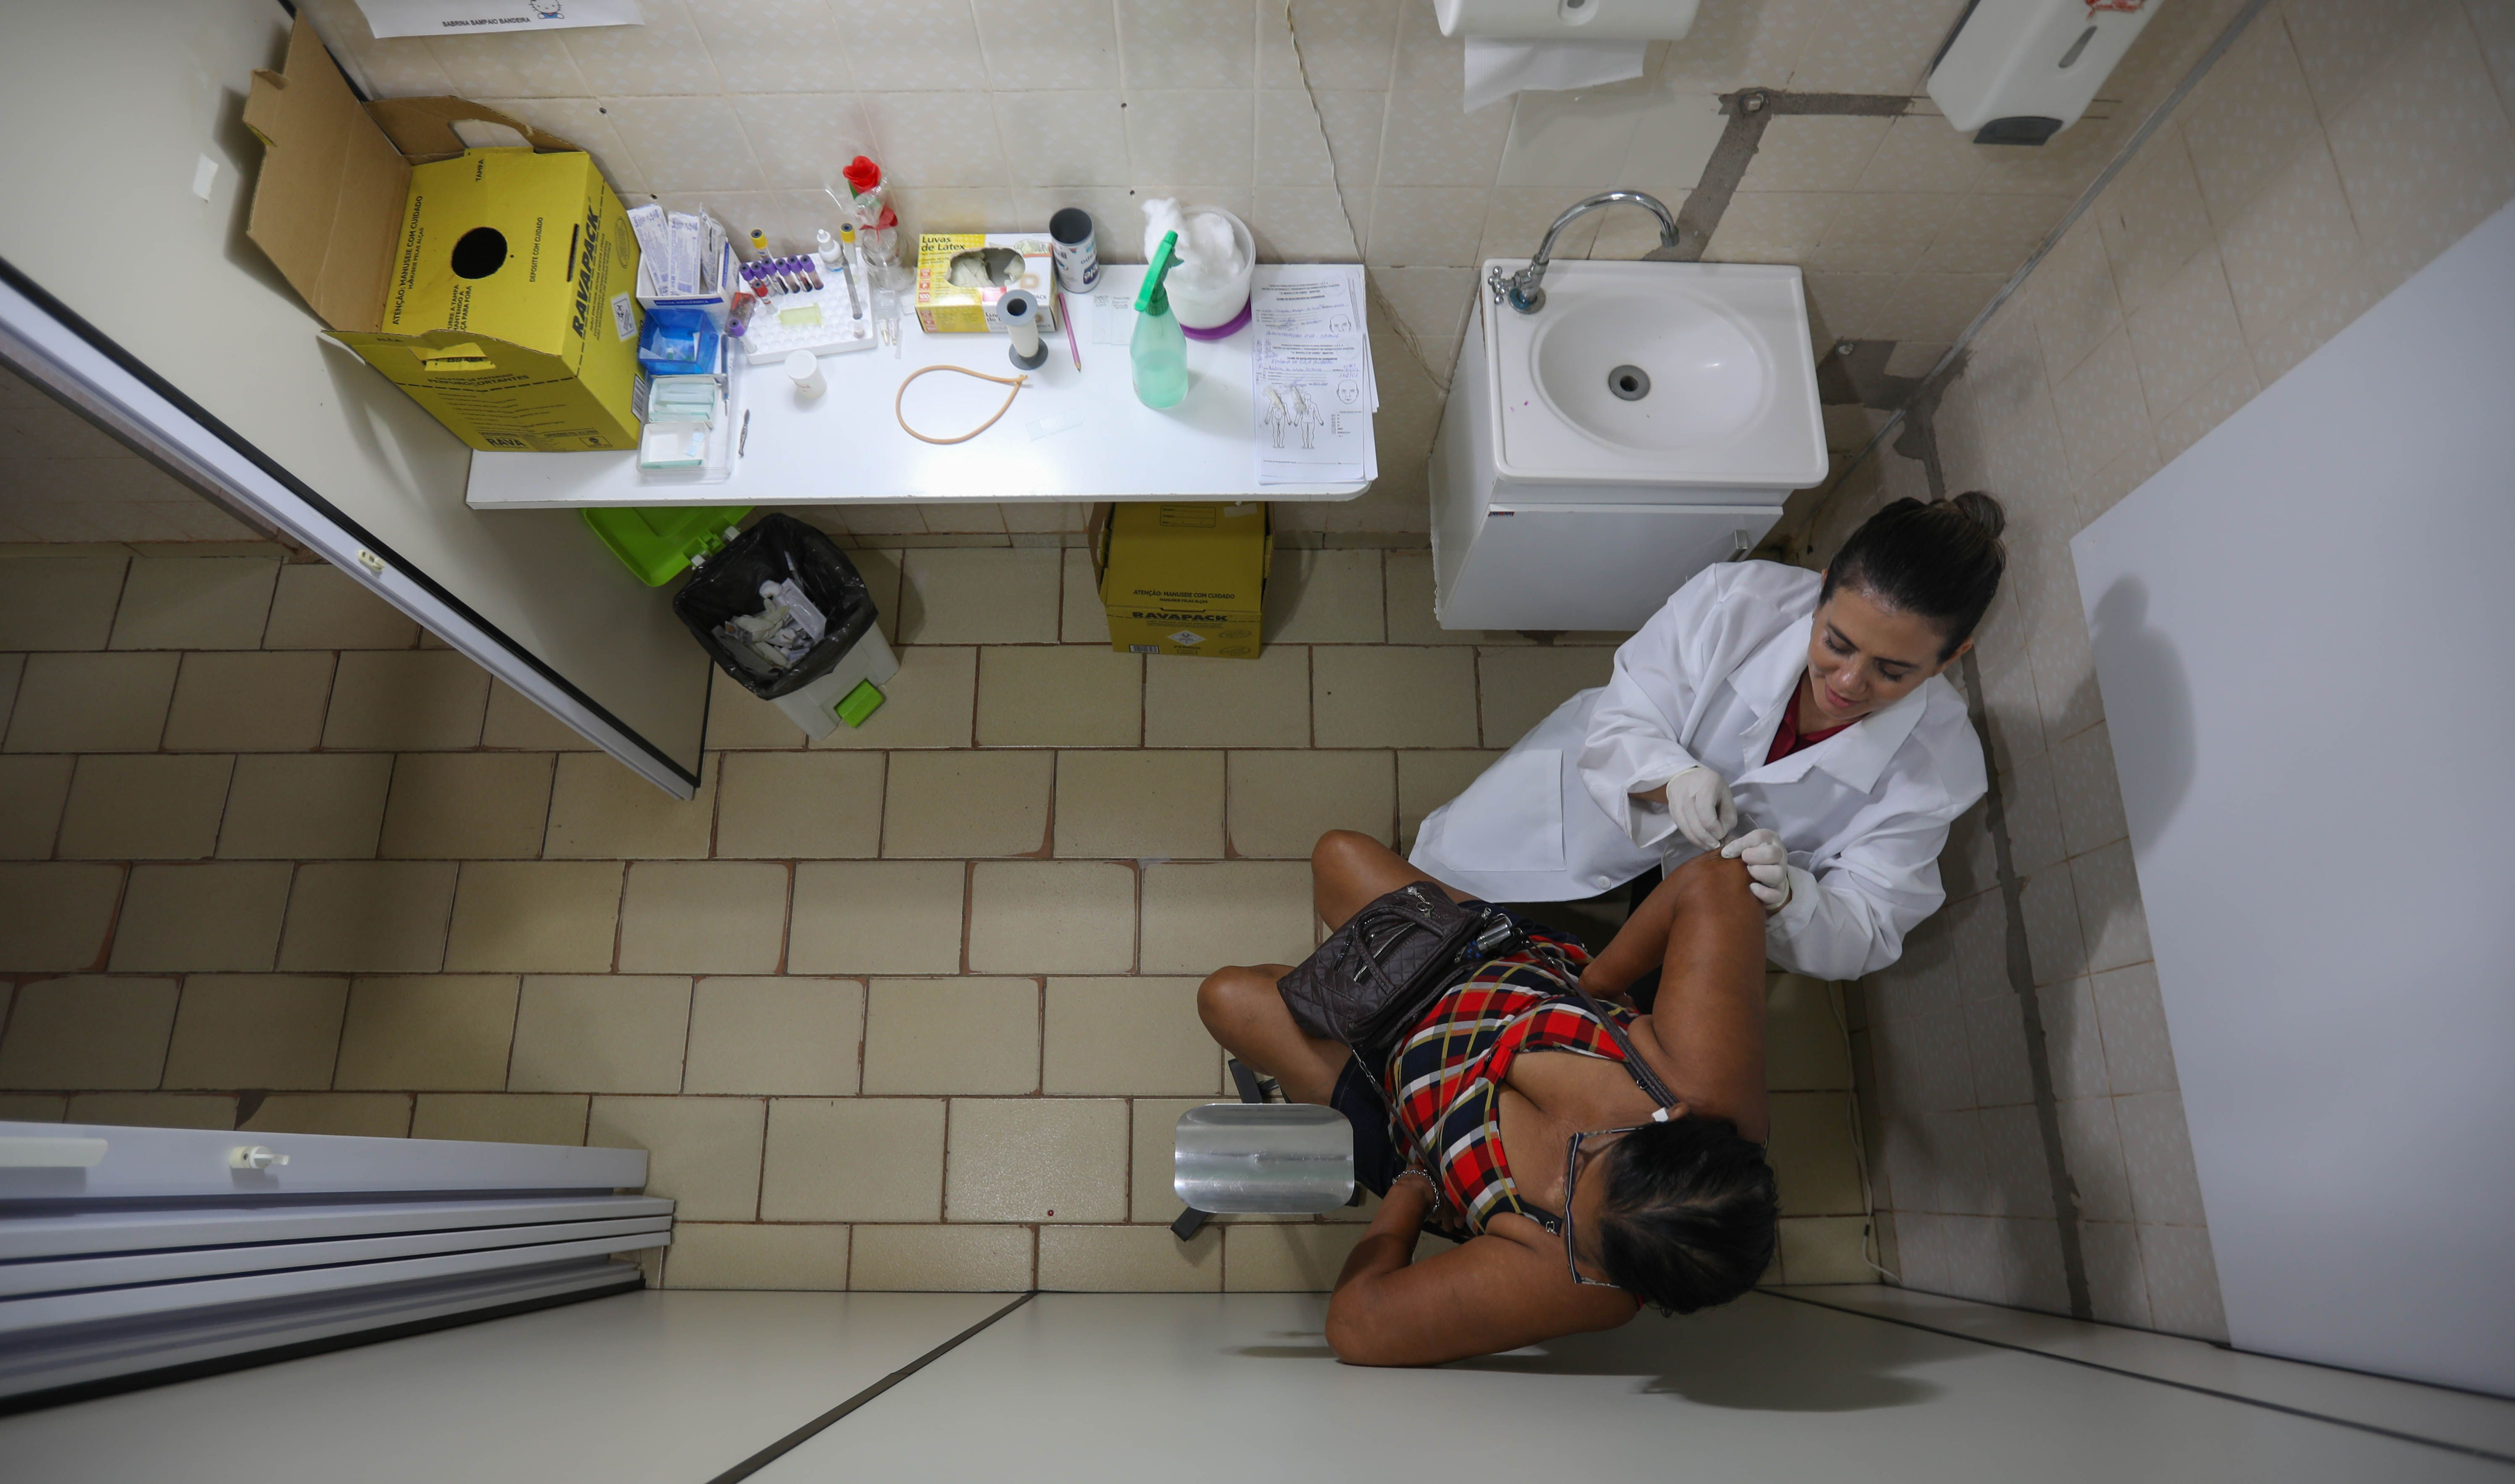 Erika Jorge, a member of the Laboratory of Dermatology-Immunology, takes skin samples from the elbow of a 60-year-old woman who had been exposed to leprosy. Image by Anton L. Delgado. Brazil, 2020.